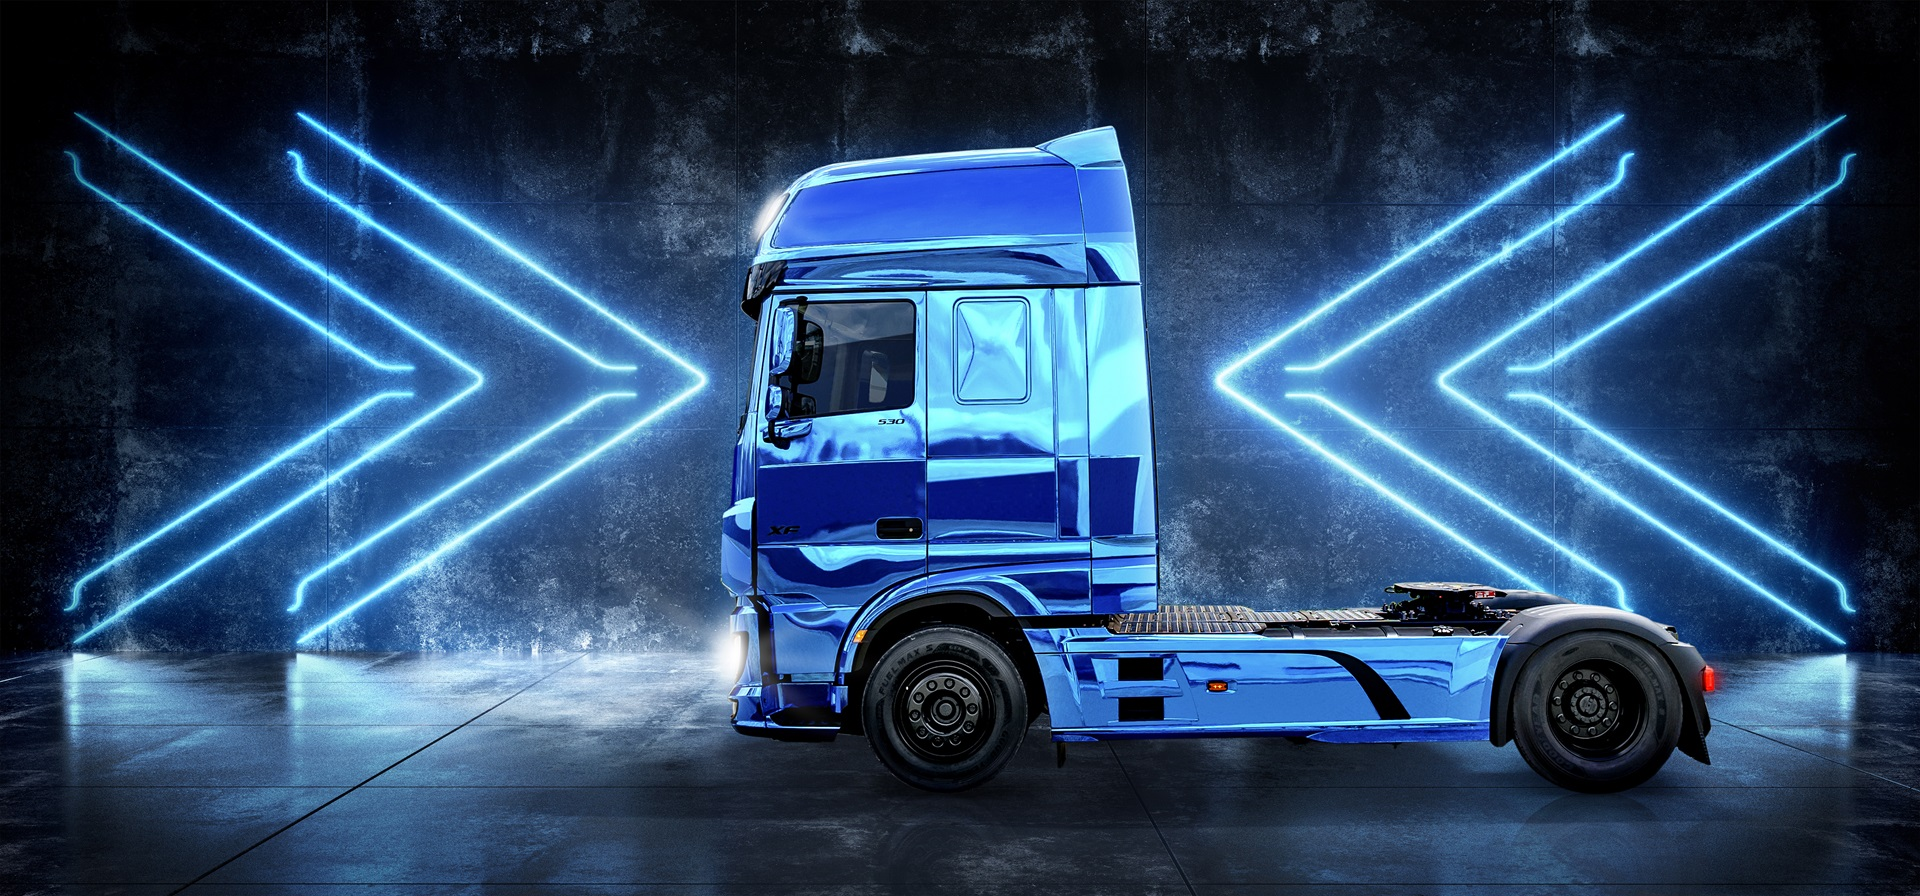 DAF XF BLUE Wallpaper Art